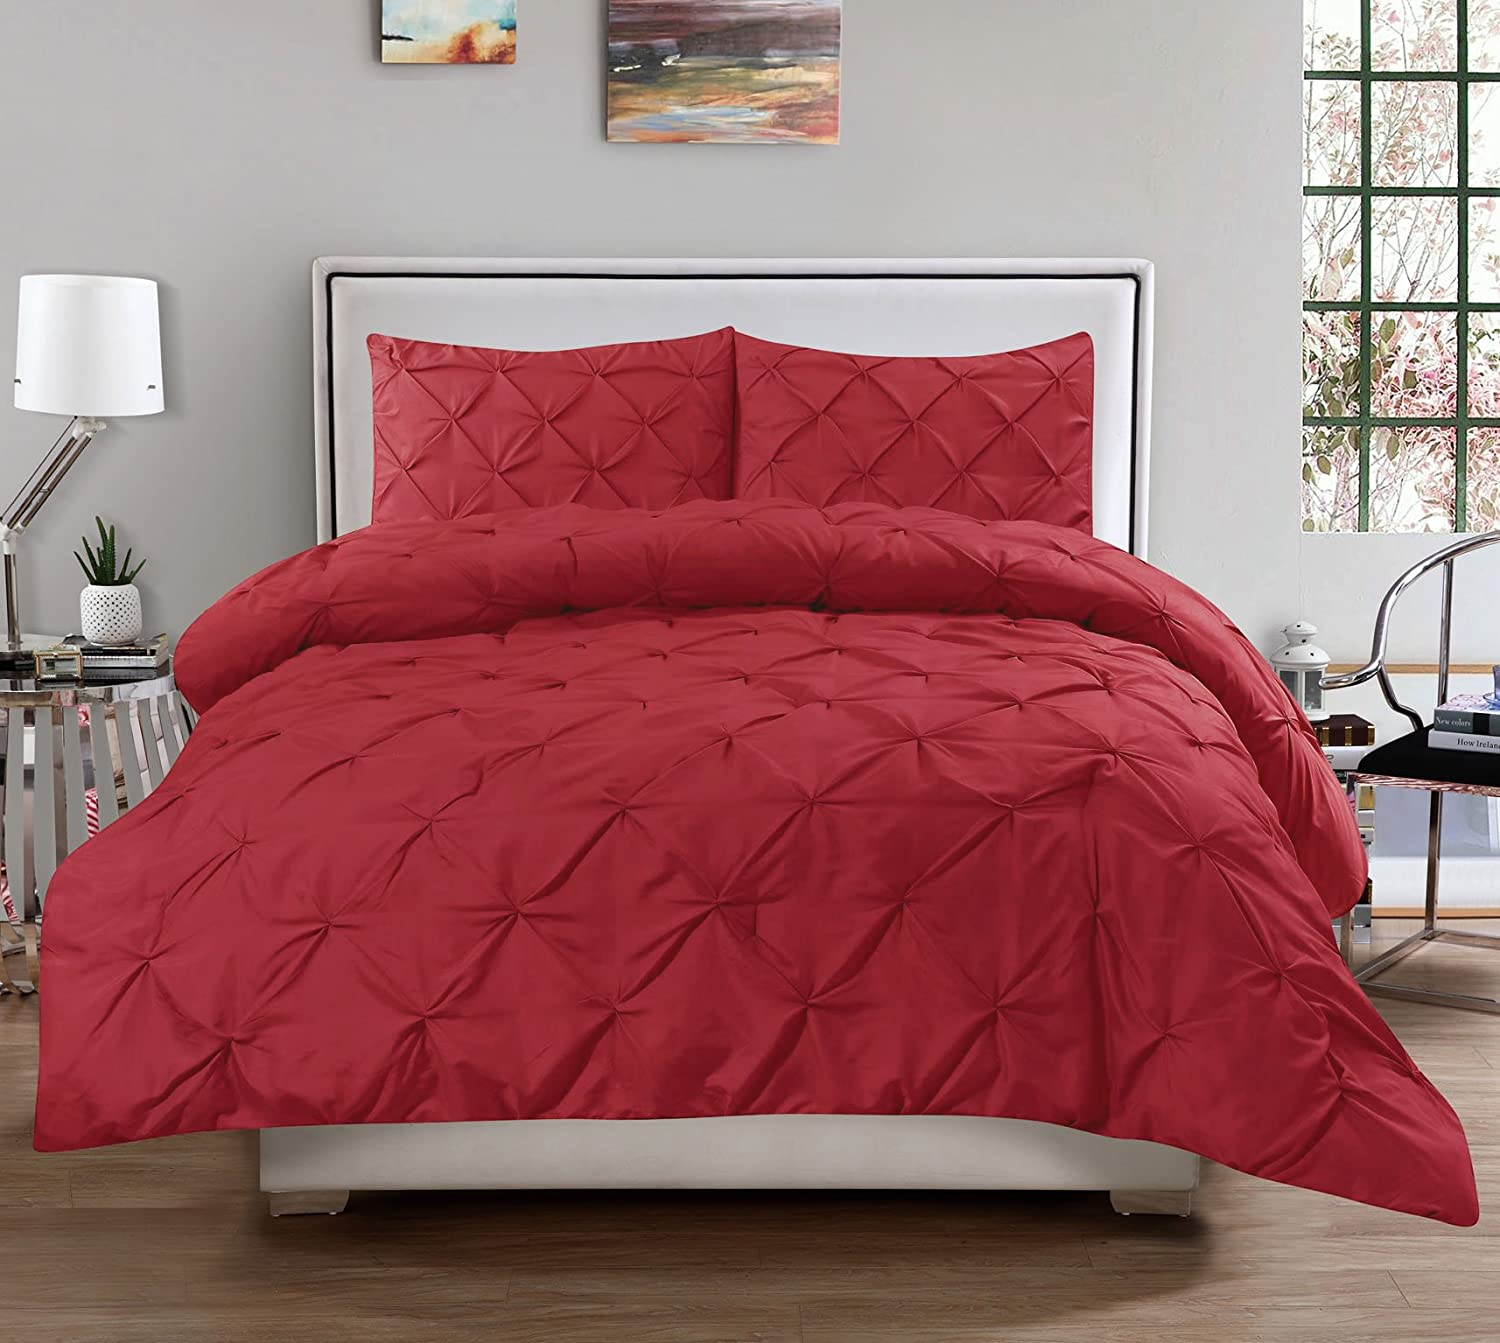 Burgundy 3 Piece Luxurious Pinch Pleat Decorative Pintuck Comforter Set